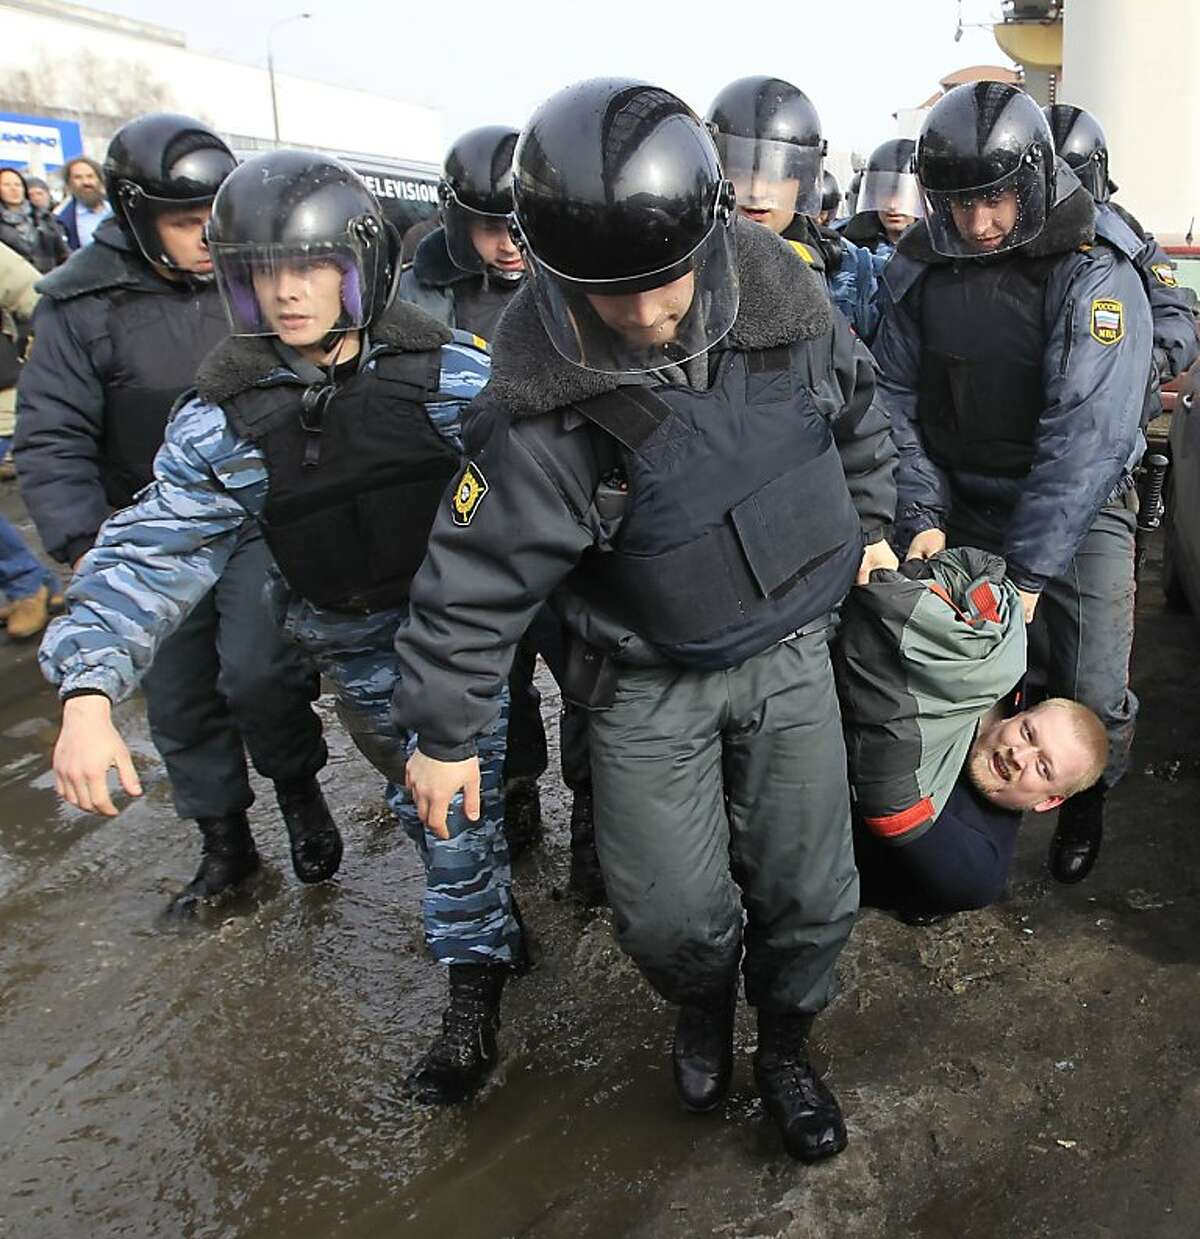 Police officers detain a protester outside the Kremlin-loyal NTV television station in Moscow, Sunday, March, 18, 2012. The NTV documentary program